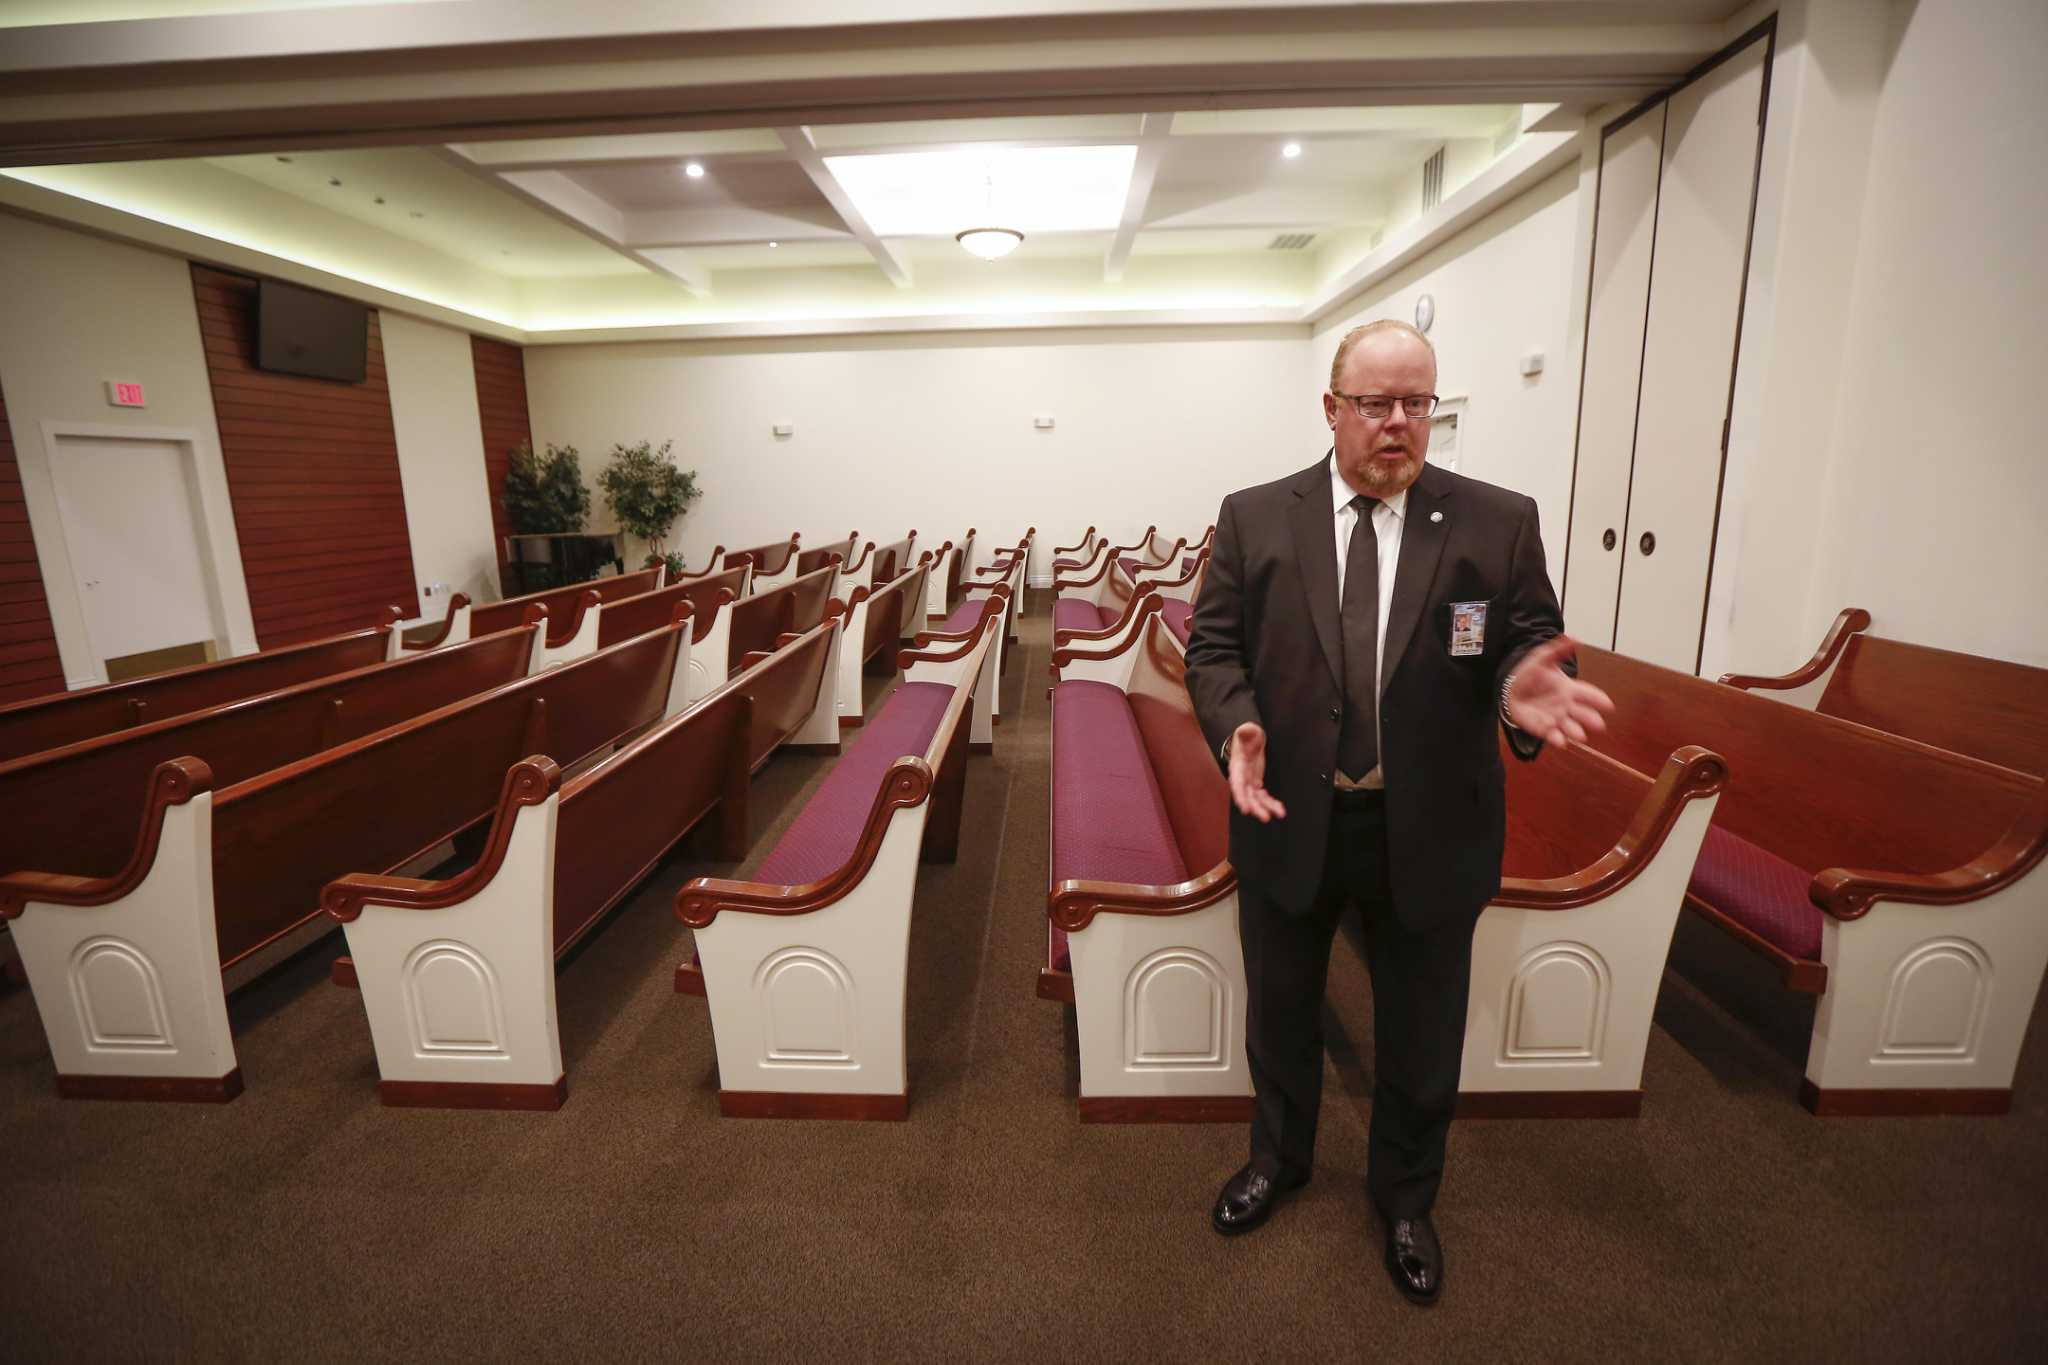 Houston funeral homes adjust business as coronavirus brings 'fear of the unknown'